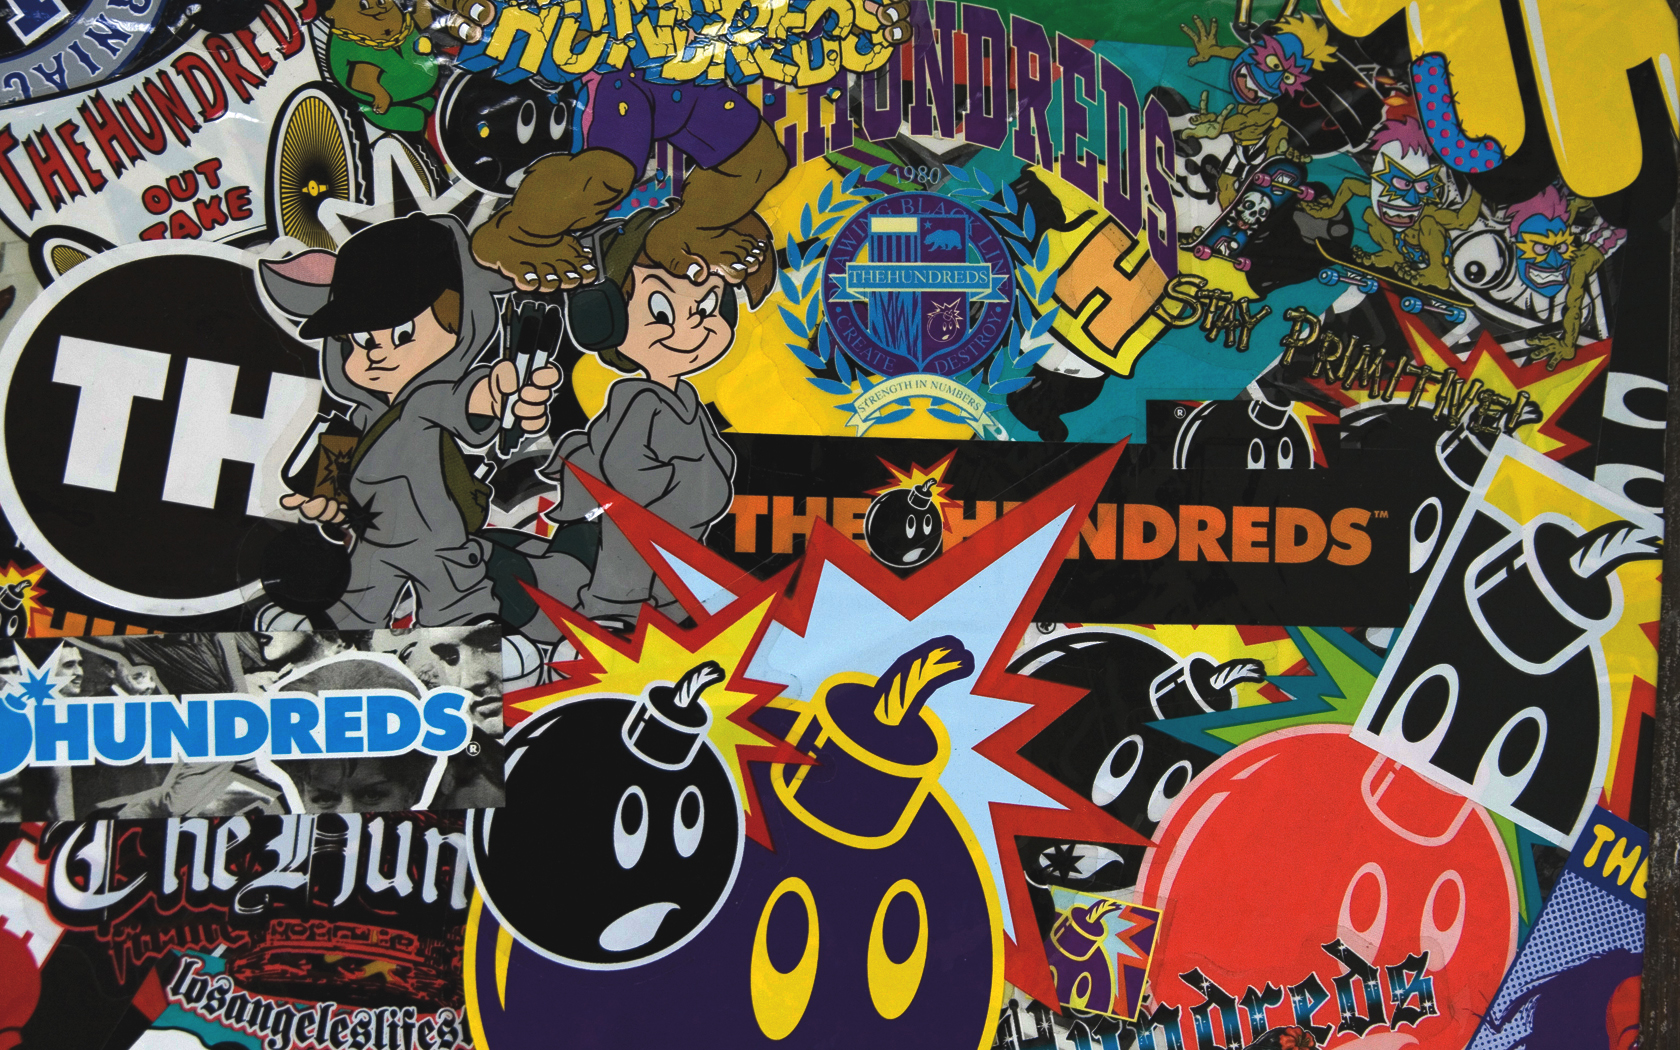 Alienware Animated Wallpaper The Hundreds Wallpapers The Hundreds Stock Photos